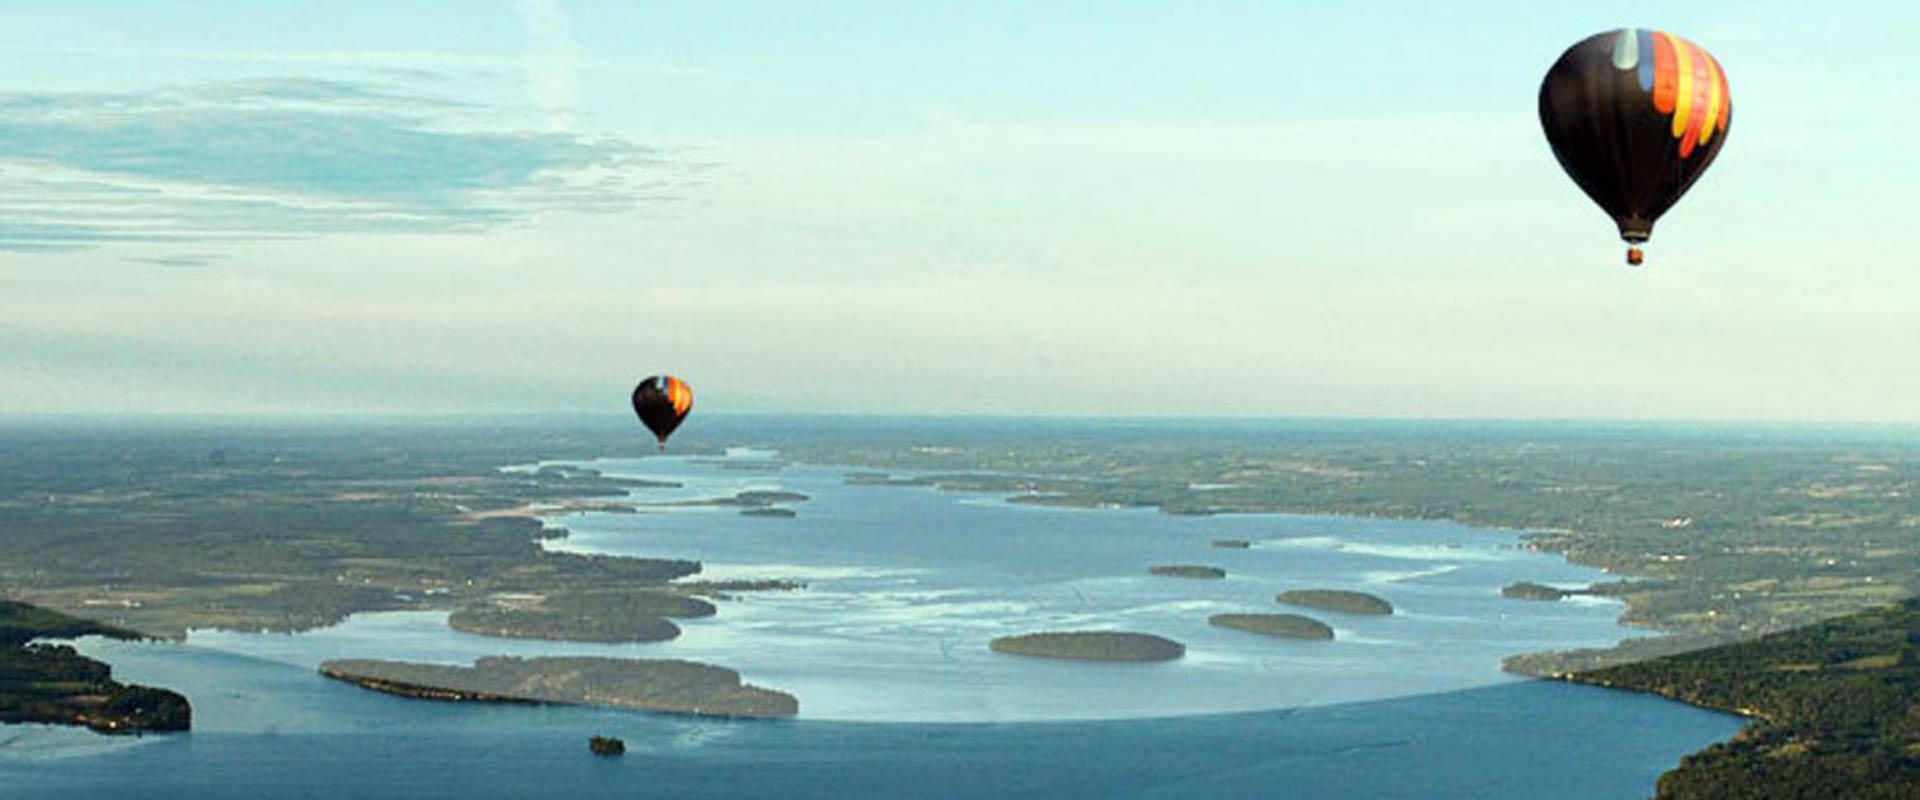 Explore the Countryside with Uptuit Balloons Hot Air Balloon Rides